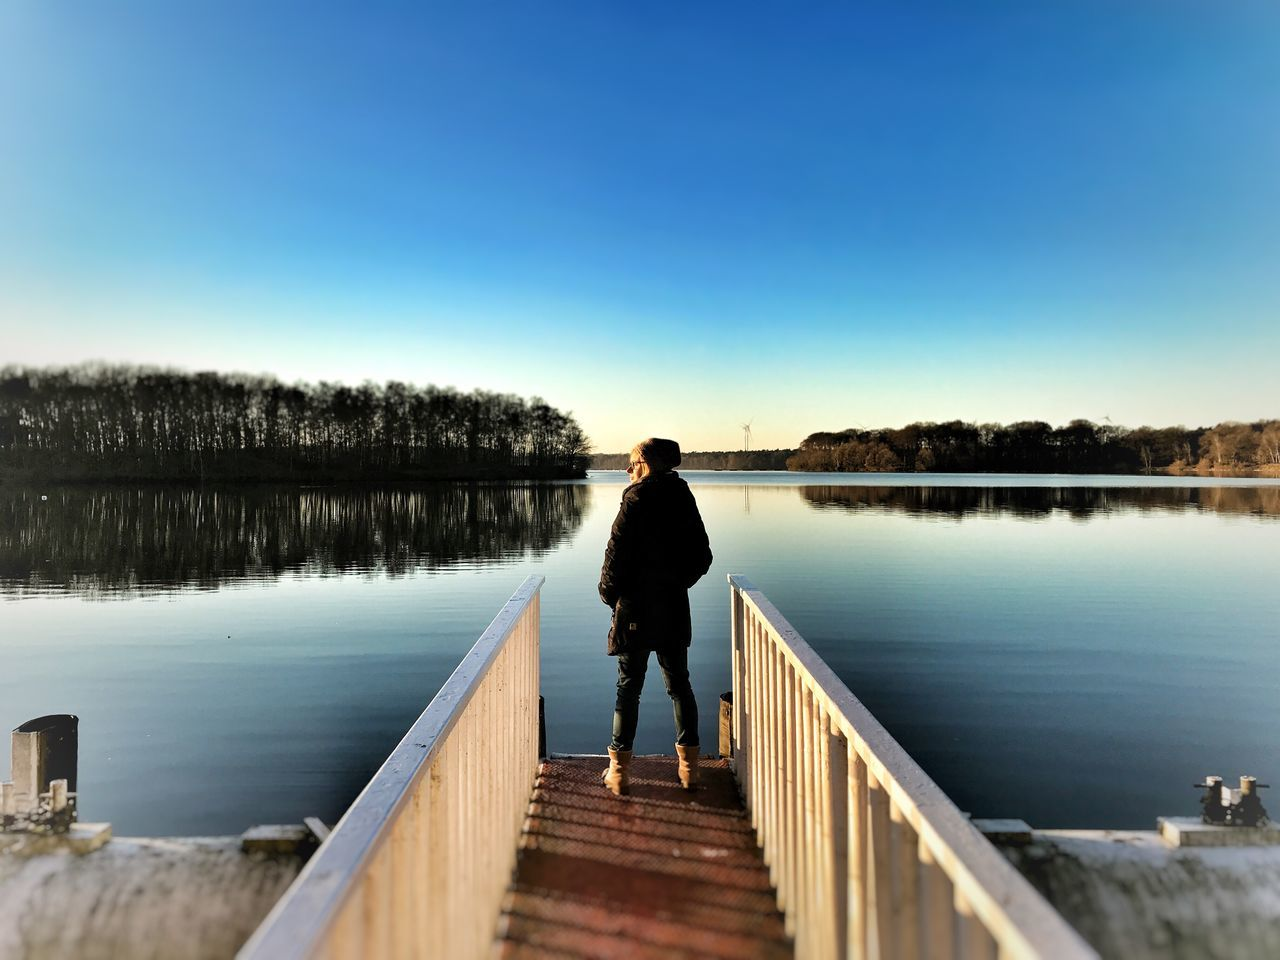 EyeEmNewHere Nature Pier Rear View Full Length Clear Sky Railing One Person Water Jetty Tranquil Scene Tranquility Boardwalk Real People Lake Standing Day Scenics Calm Haltern Am See Stausee